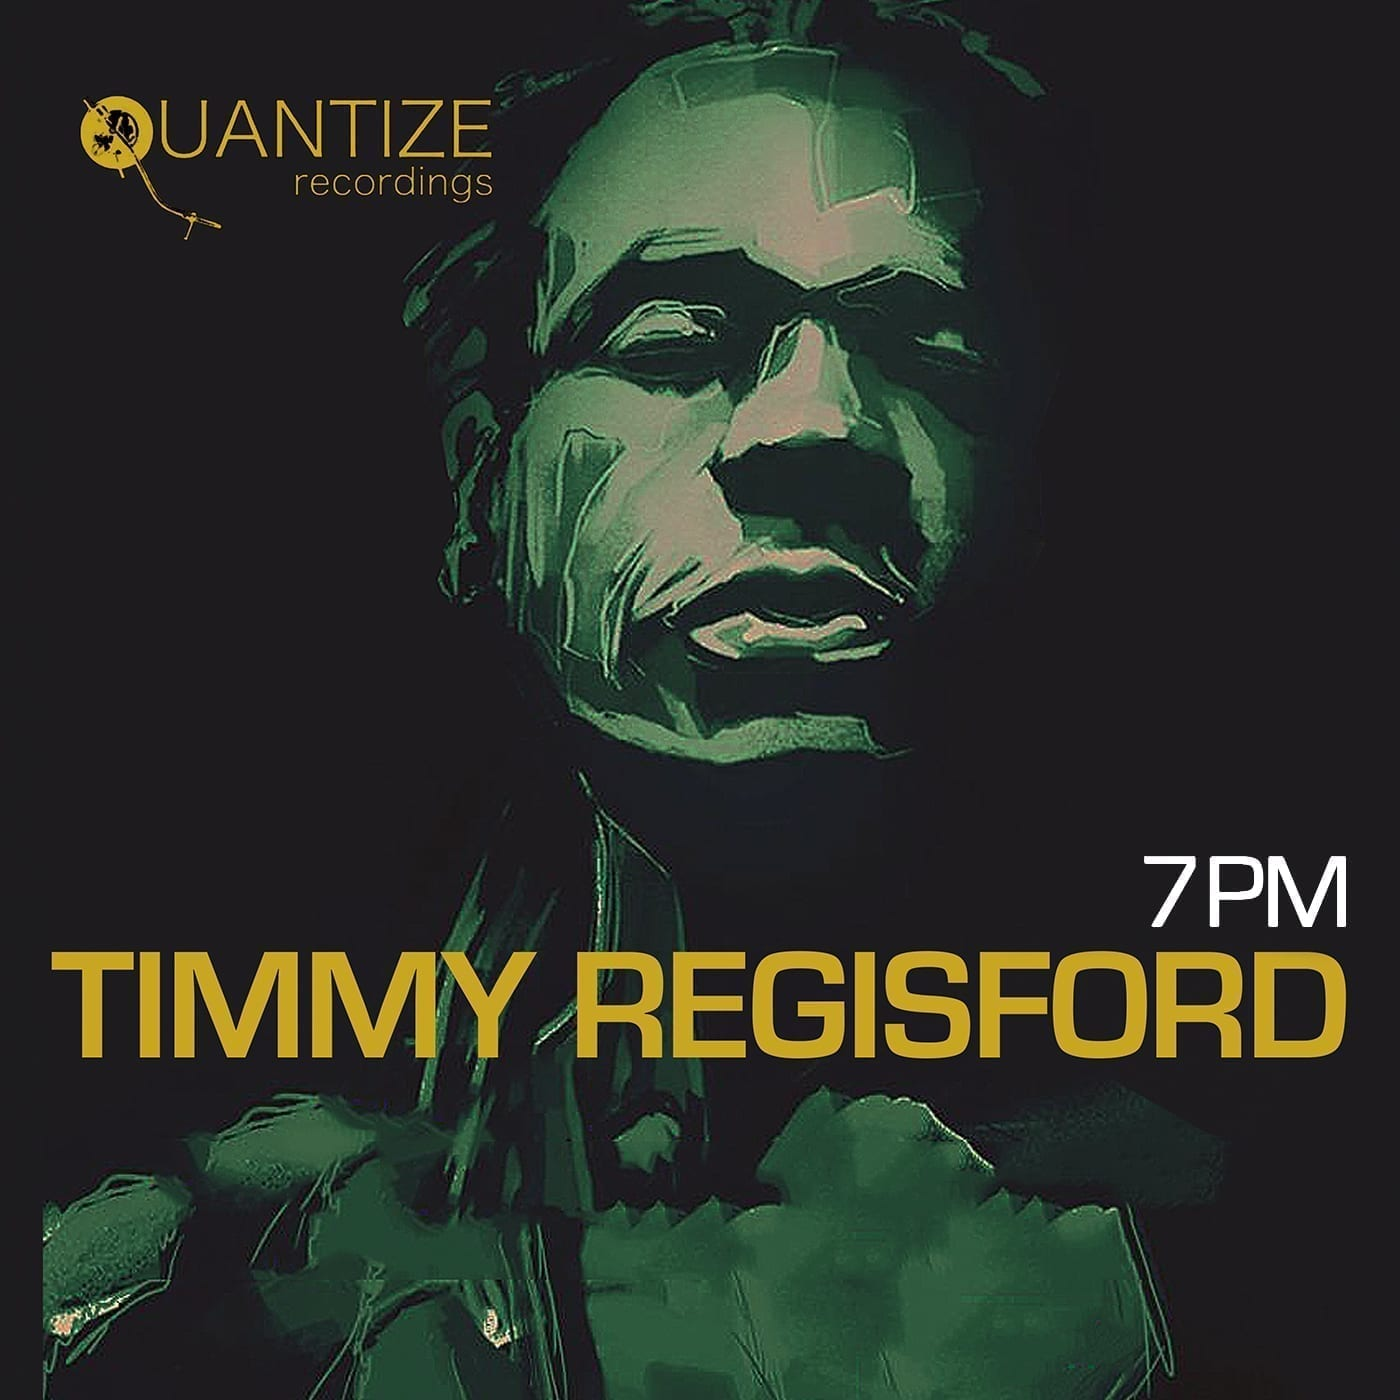 Timmy Regisford - '7pm' Album [Quantize Recordings]